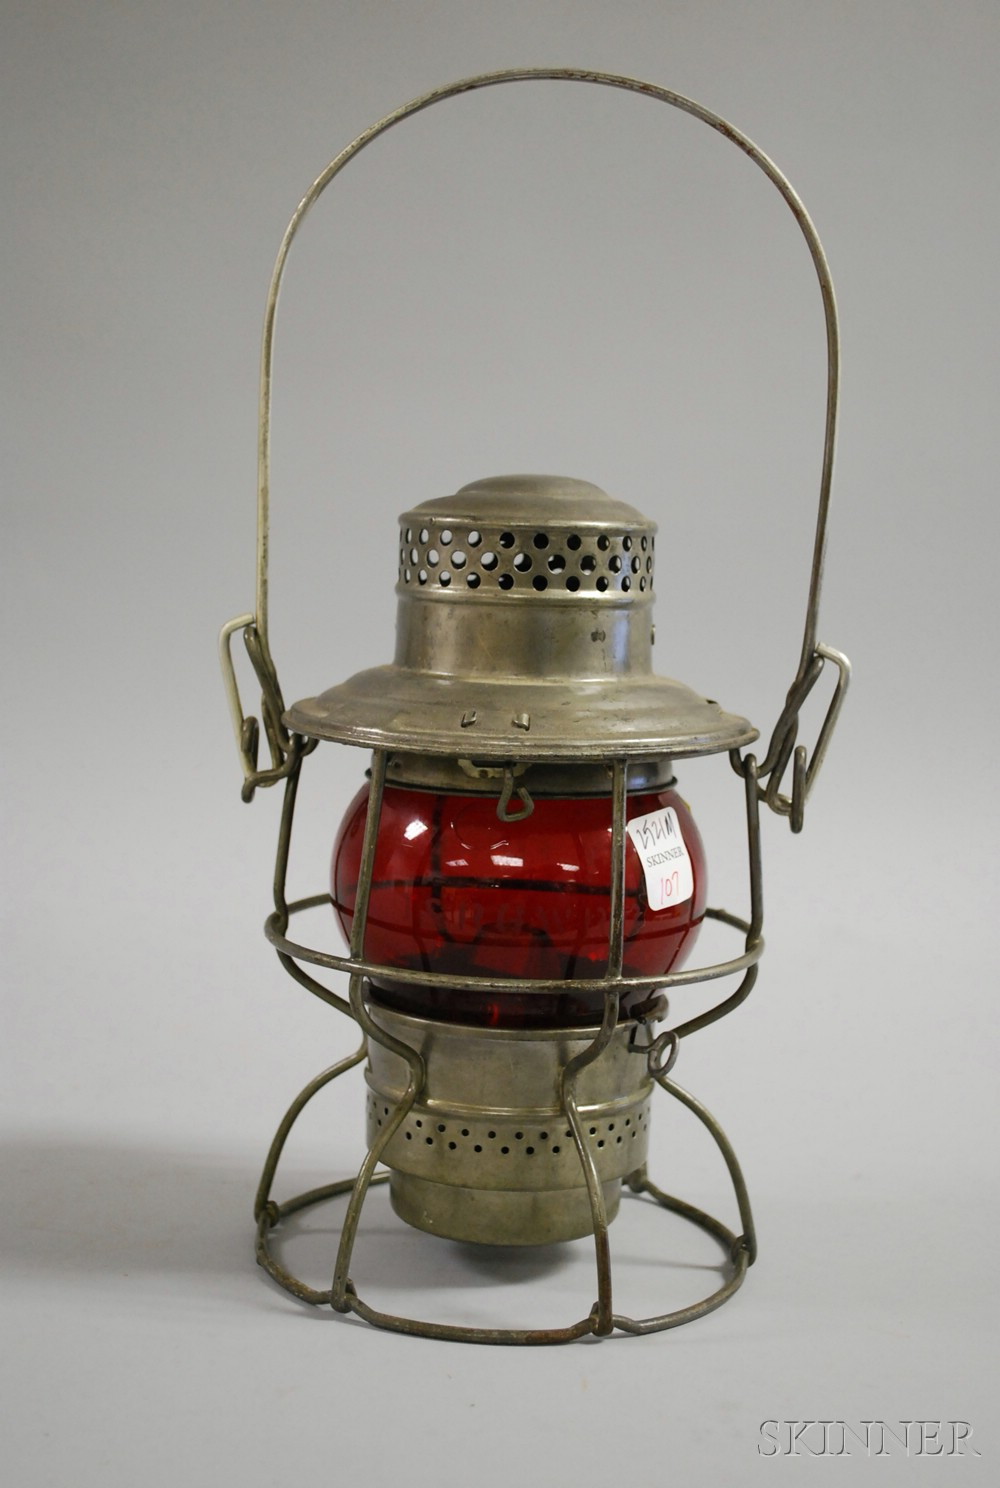 adams westlake co kerosene railroad lantern with red etched d r g w r r glass globe. Black Bedroom Furniture Sets. Home Design Ideas